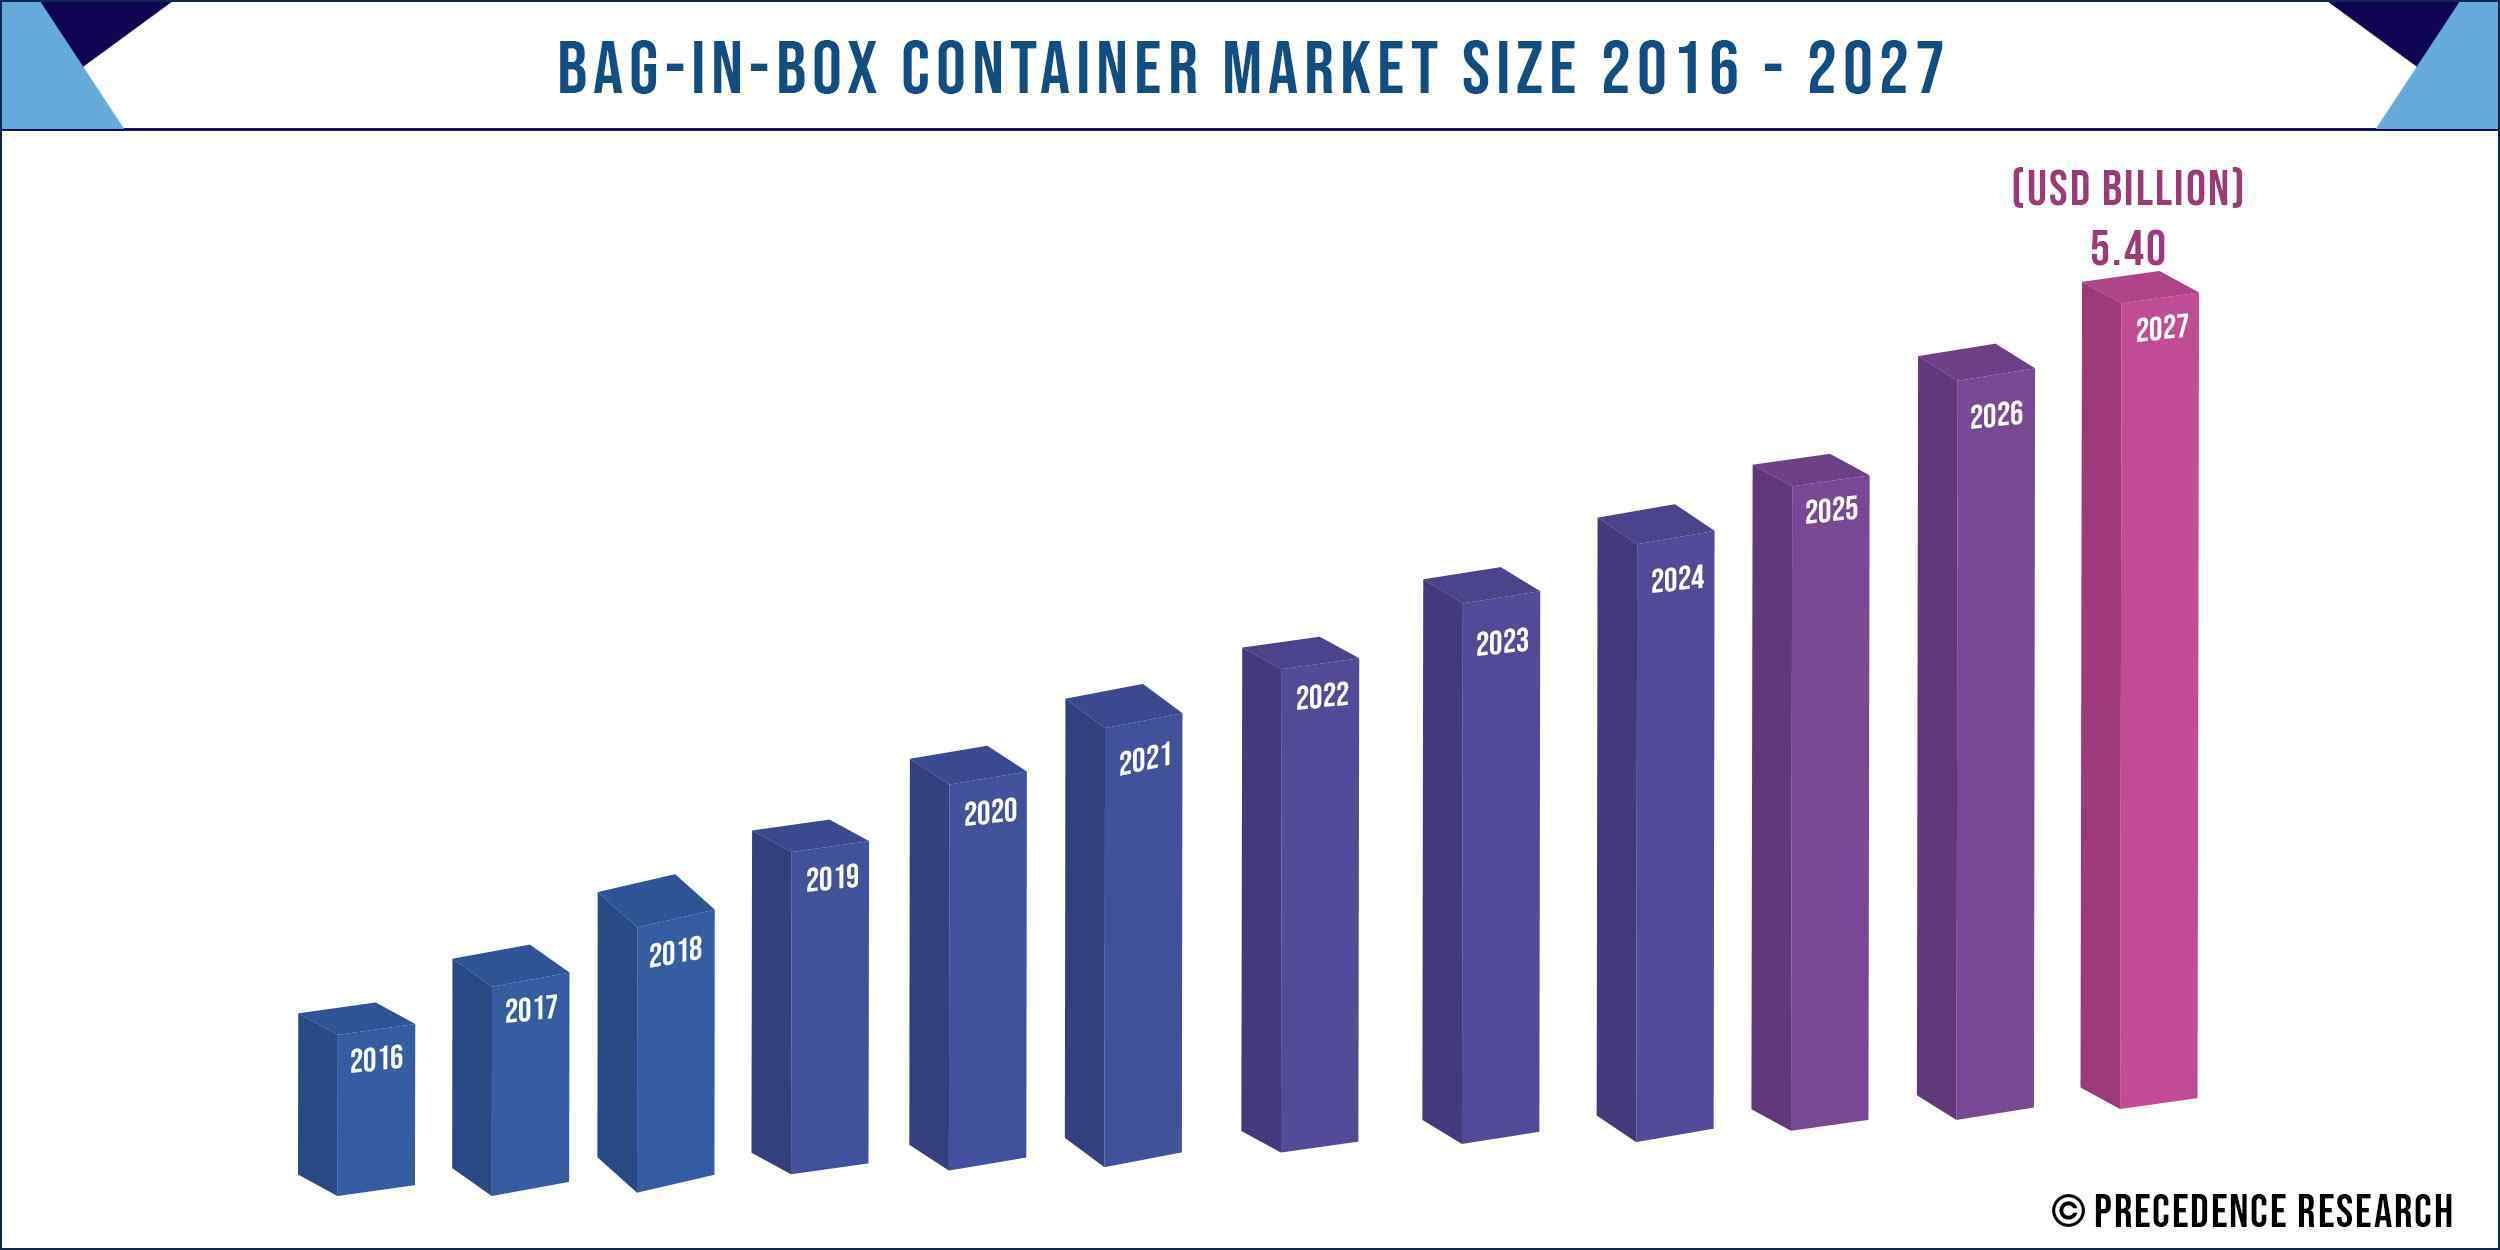 Bag in Box Container Market Size 2016-2027